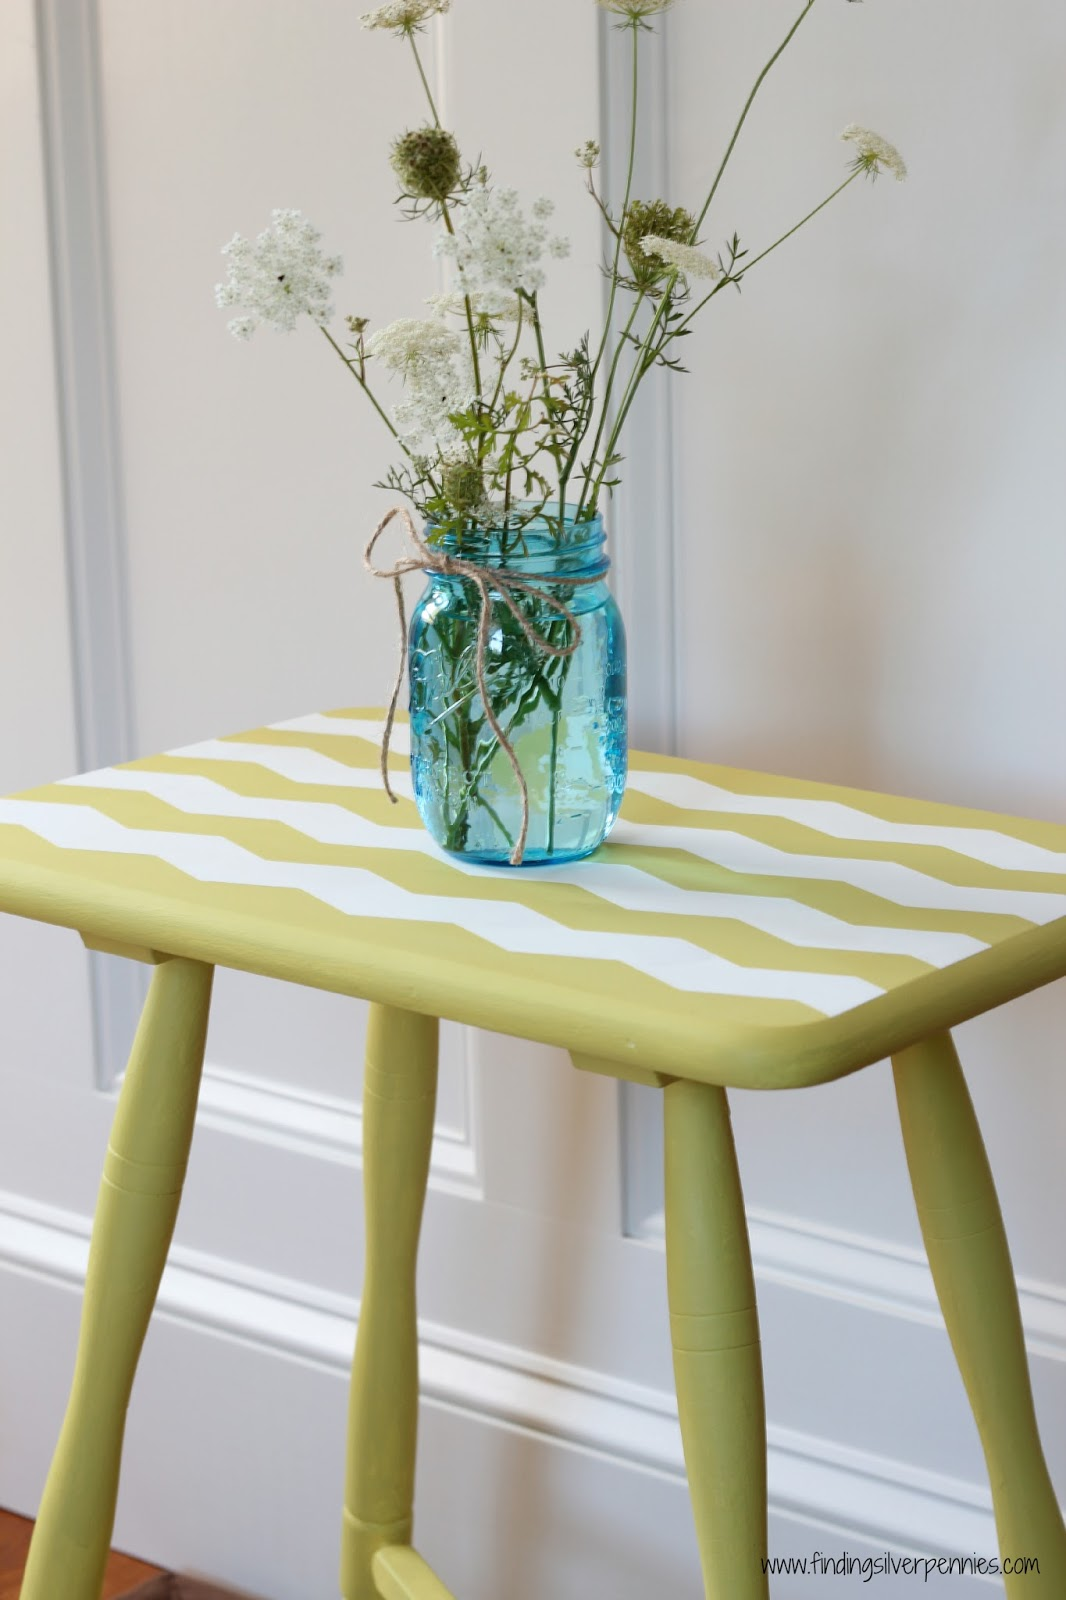 Painting a chevron table finding silver pennies for Yellow painted table